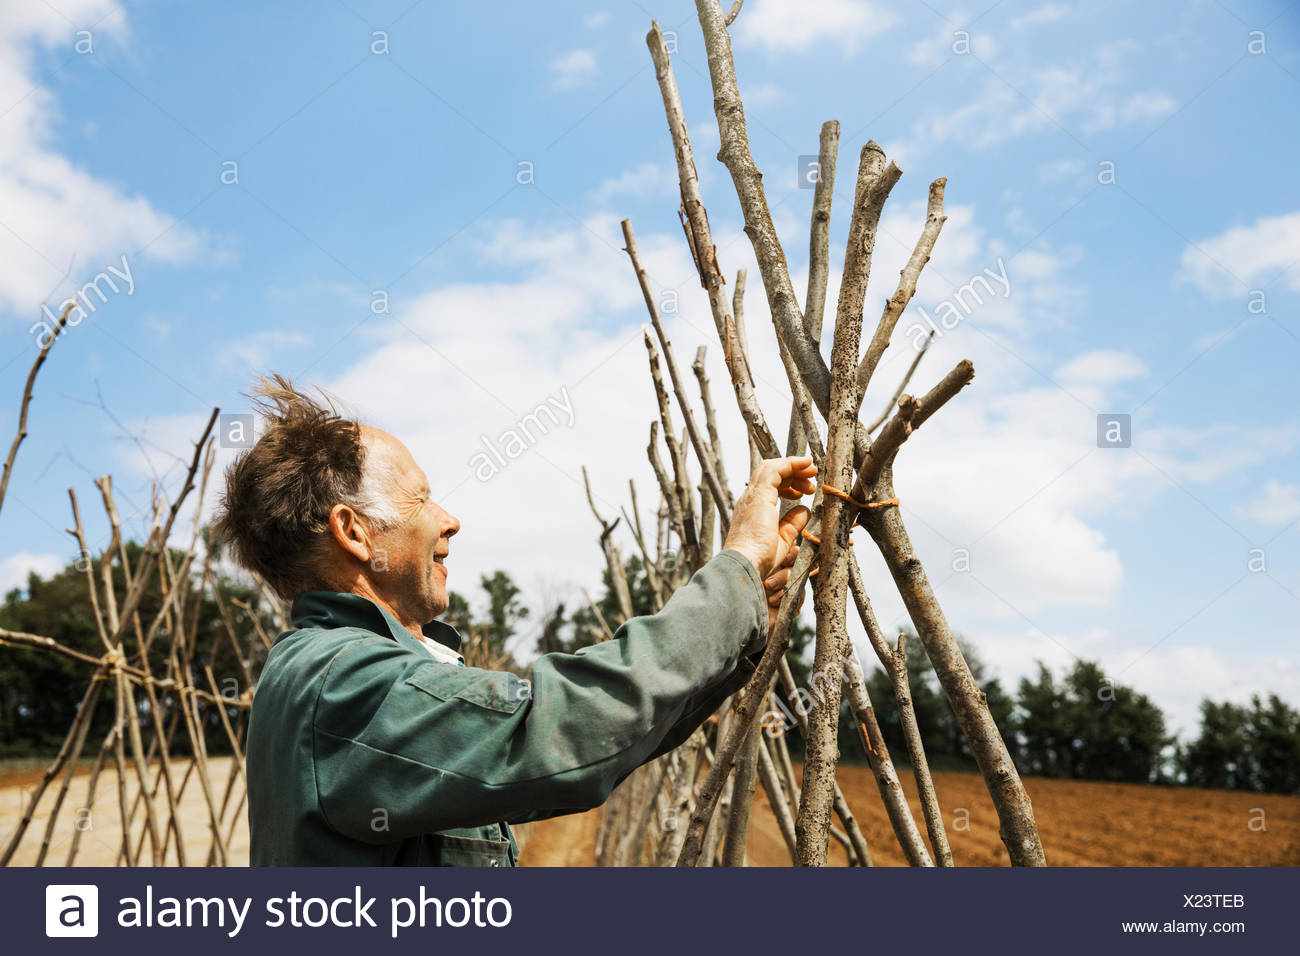 A man tying in poles in a line of bean pole supports. - Stock Image